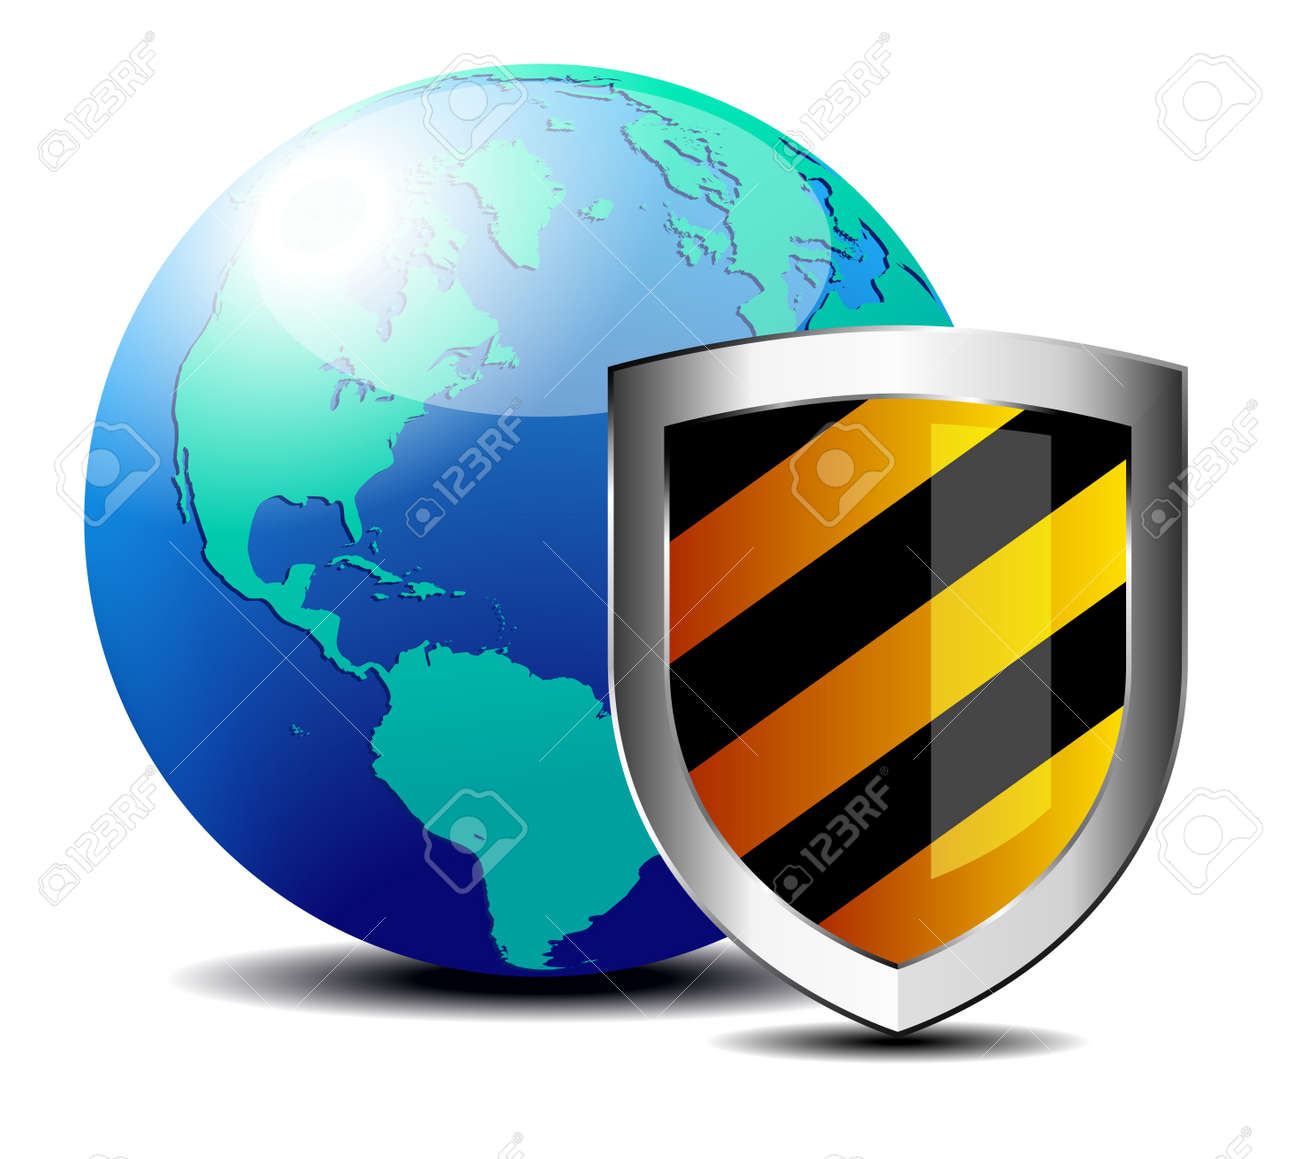 Shield with world depicting internet security - Safety America Stock Vector - 18060304